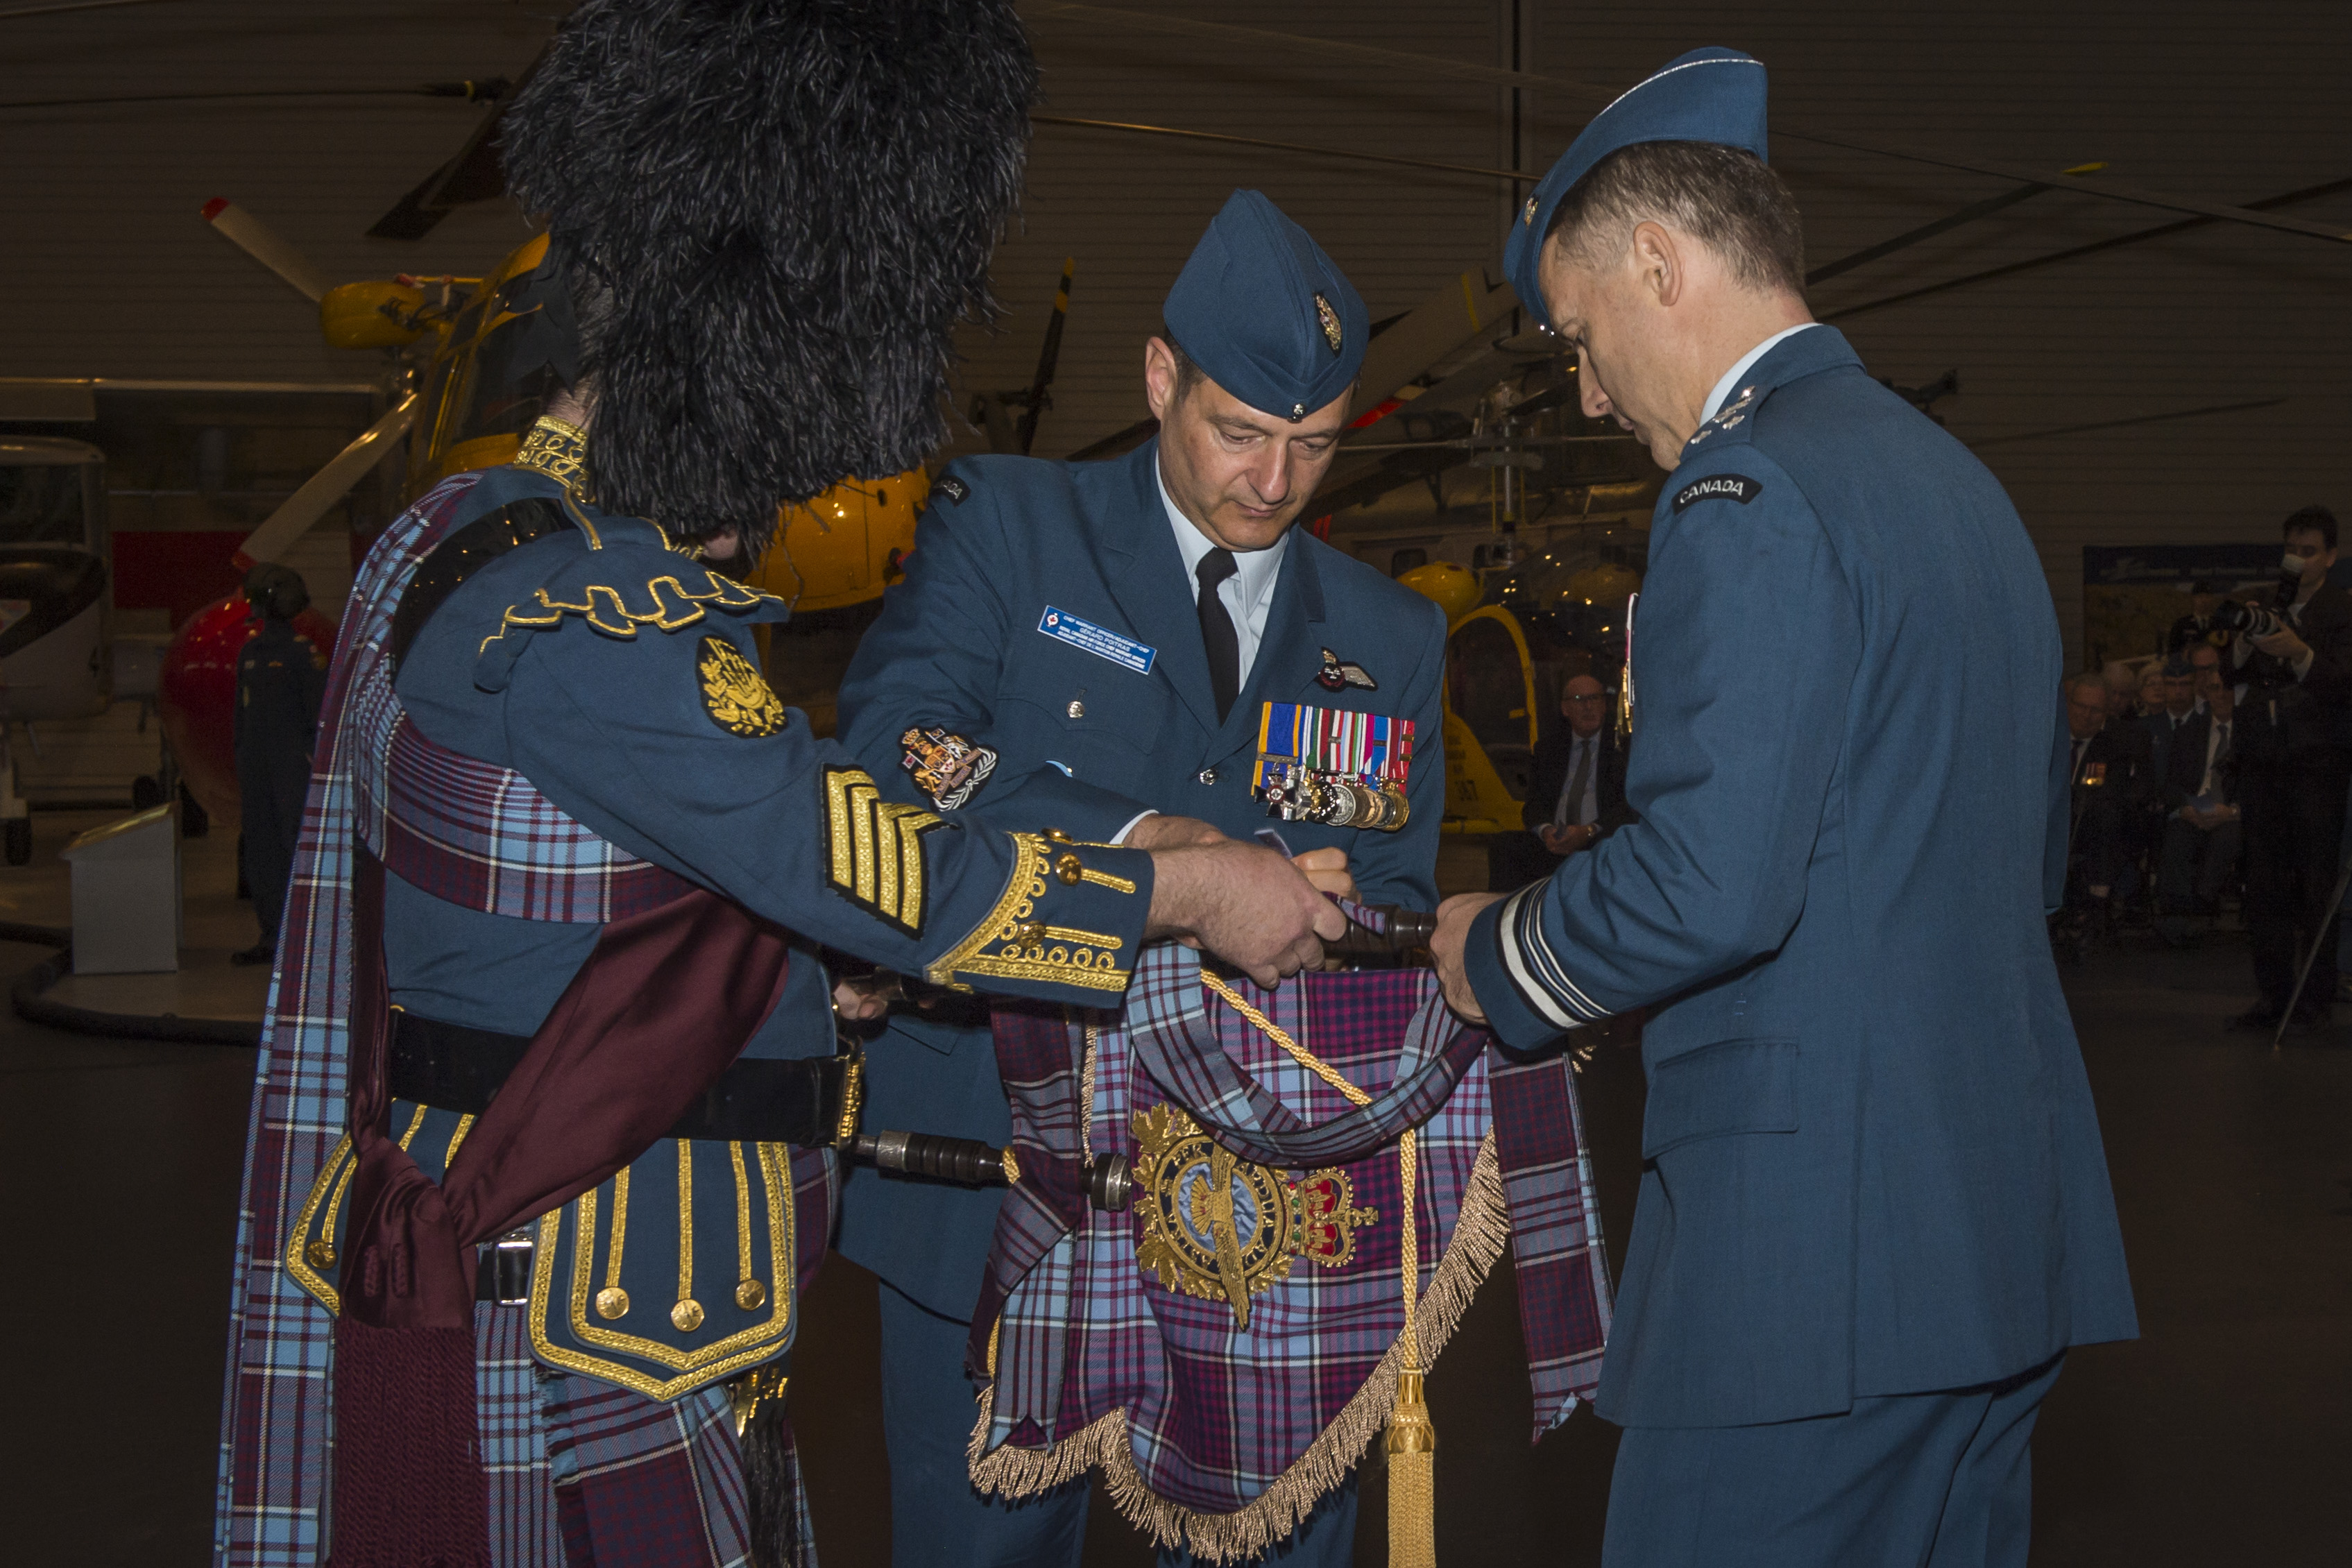 The RCAF command chief warrant officer, Chief Warrant Officer Gérard Poitras (centre), assists the new commander, Lieutenant-General Al Meinzinger, in affixing the new commander's pipe banner to the bass drone of Sergeant Malcolm Odell's bagpipes. Sergeant Odell is the pipe major of the RCAF Pipes and Drums. PHOTO: Corporal Alana Morin, FA03-2018-0040-005